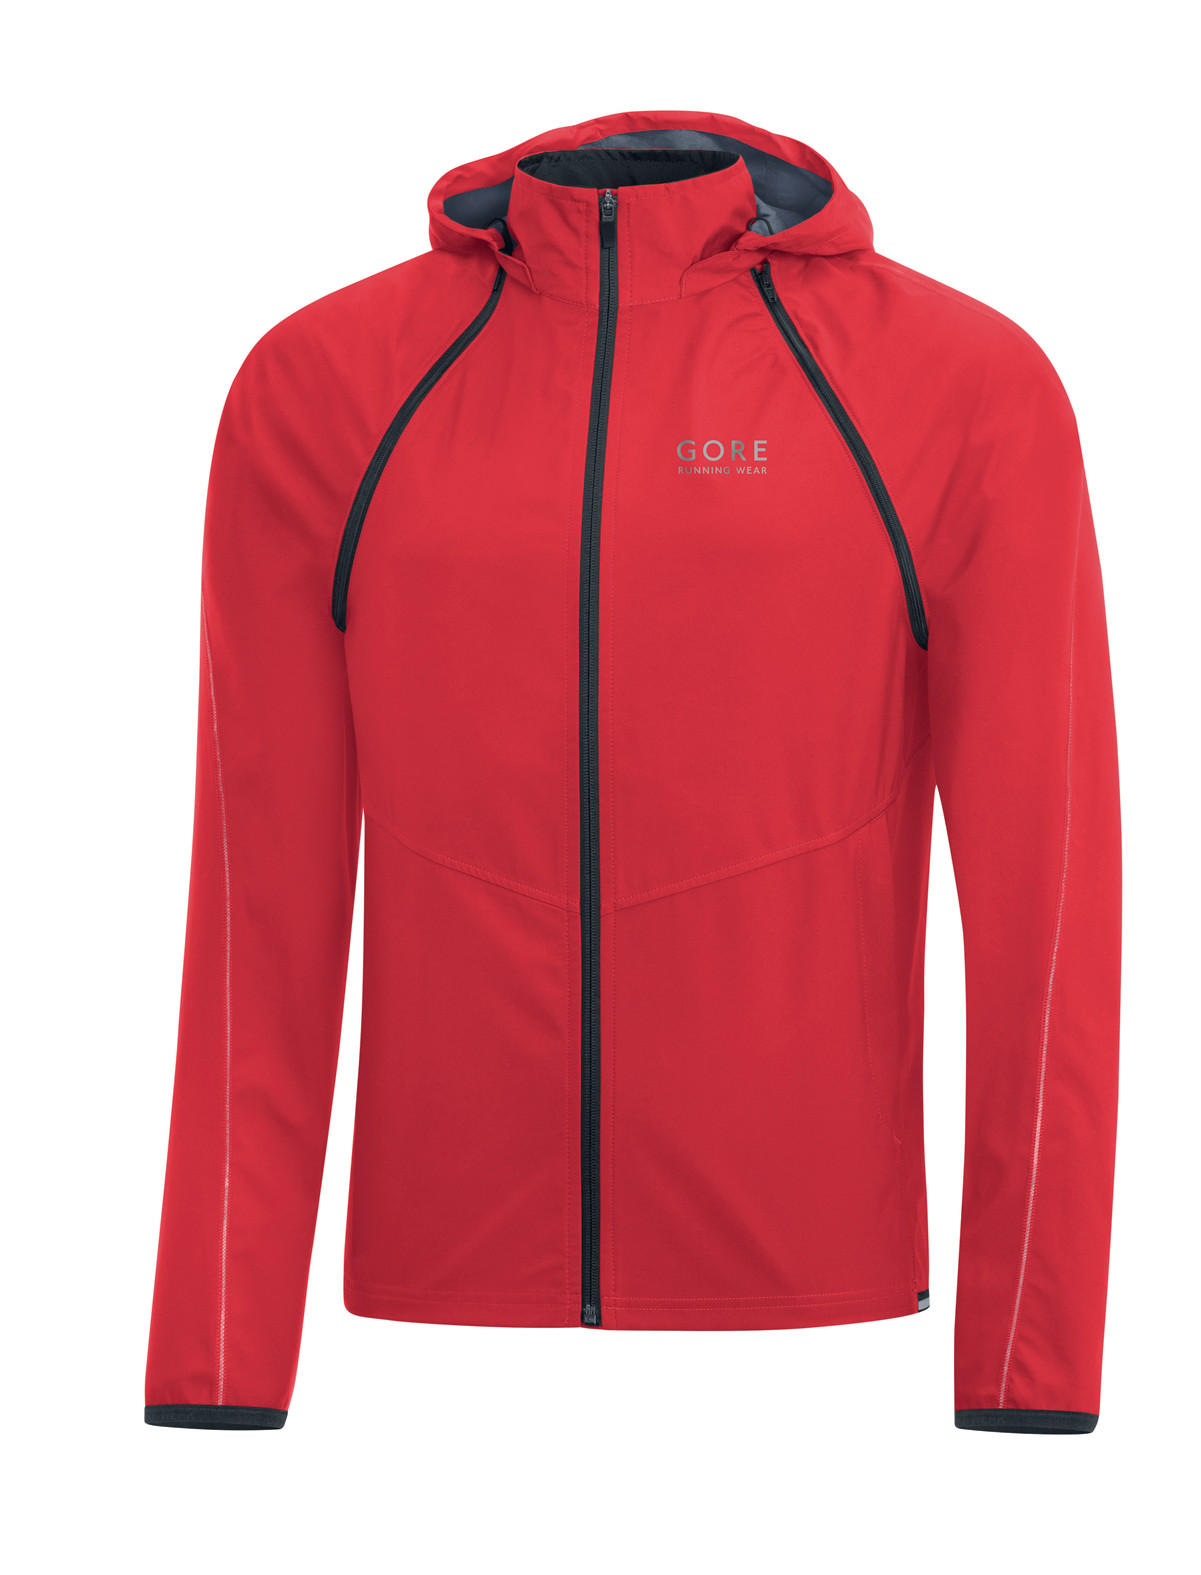 Essential Gore® Windstopper® Zip-Off Jacket : 1er test